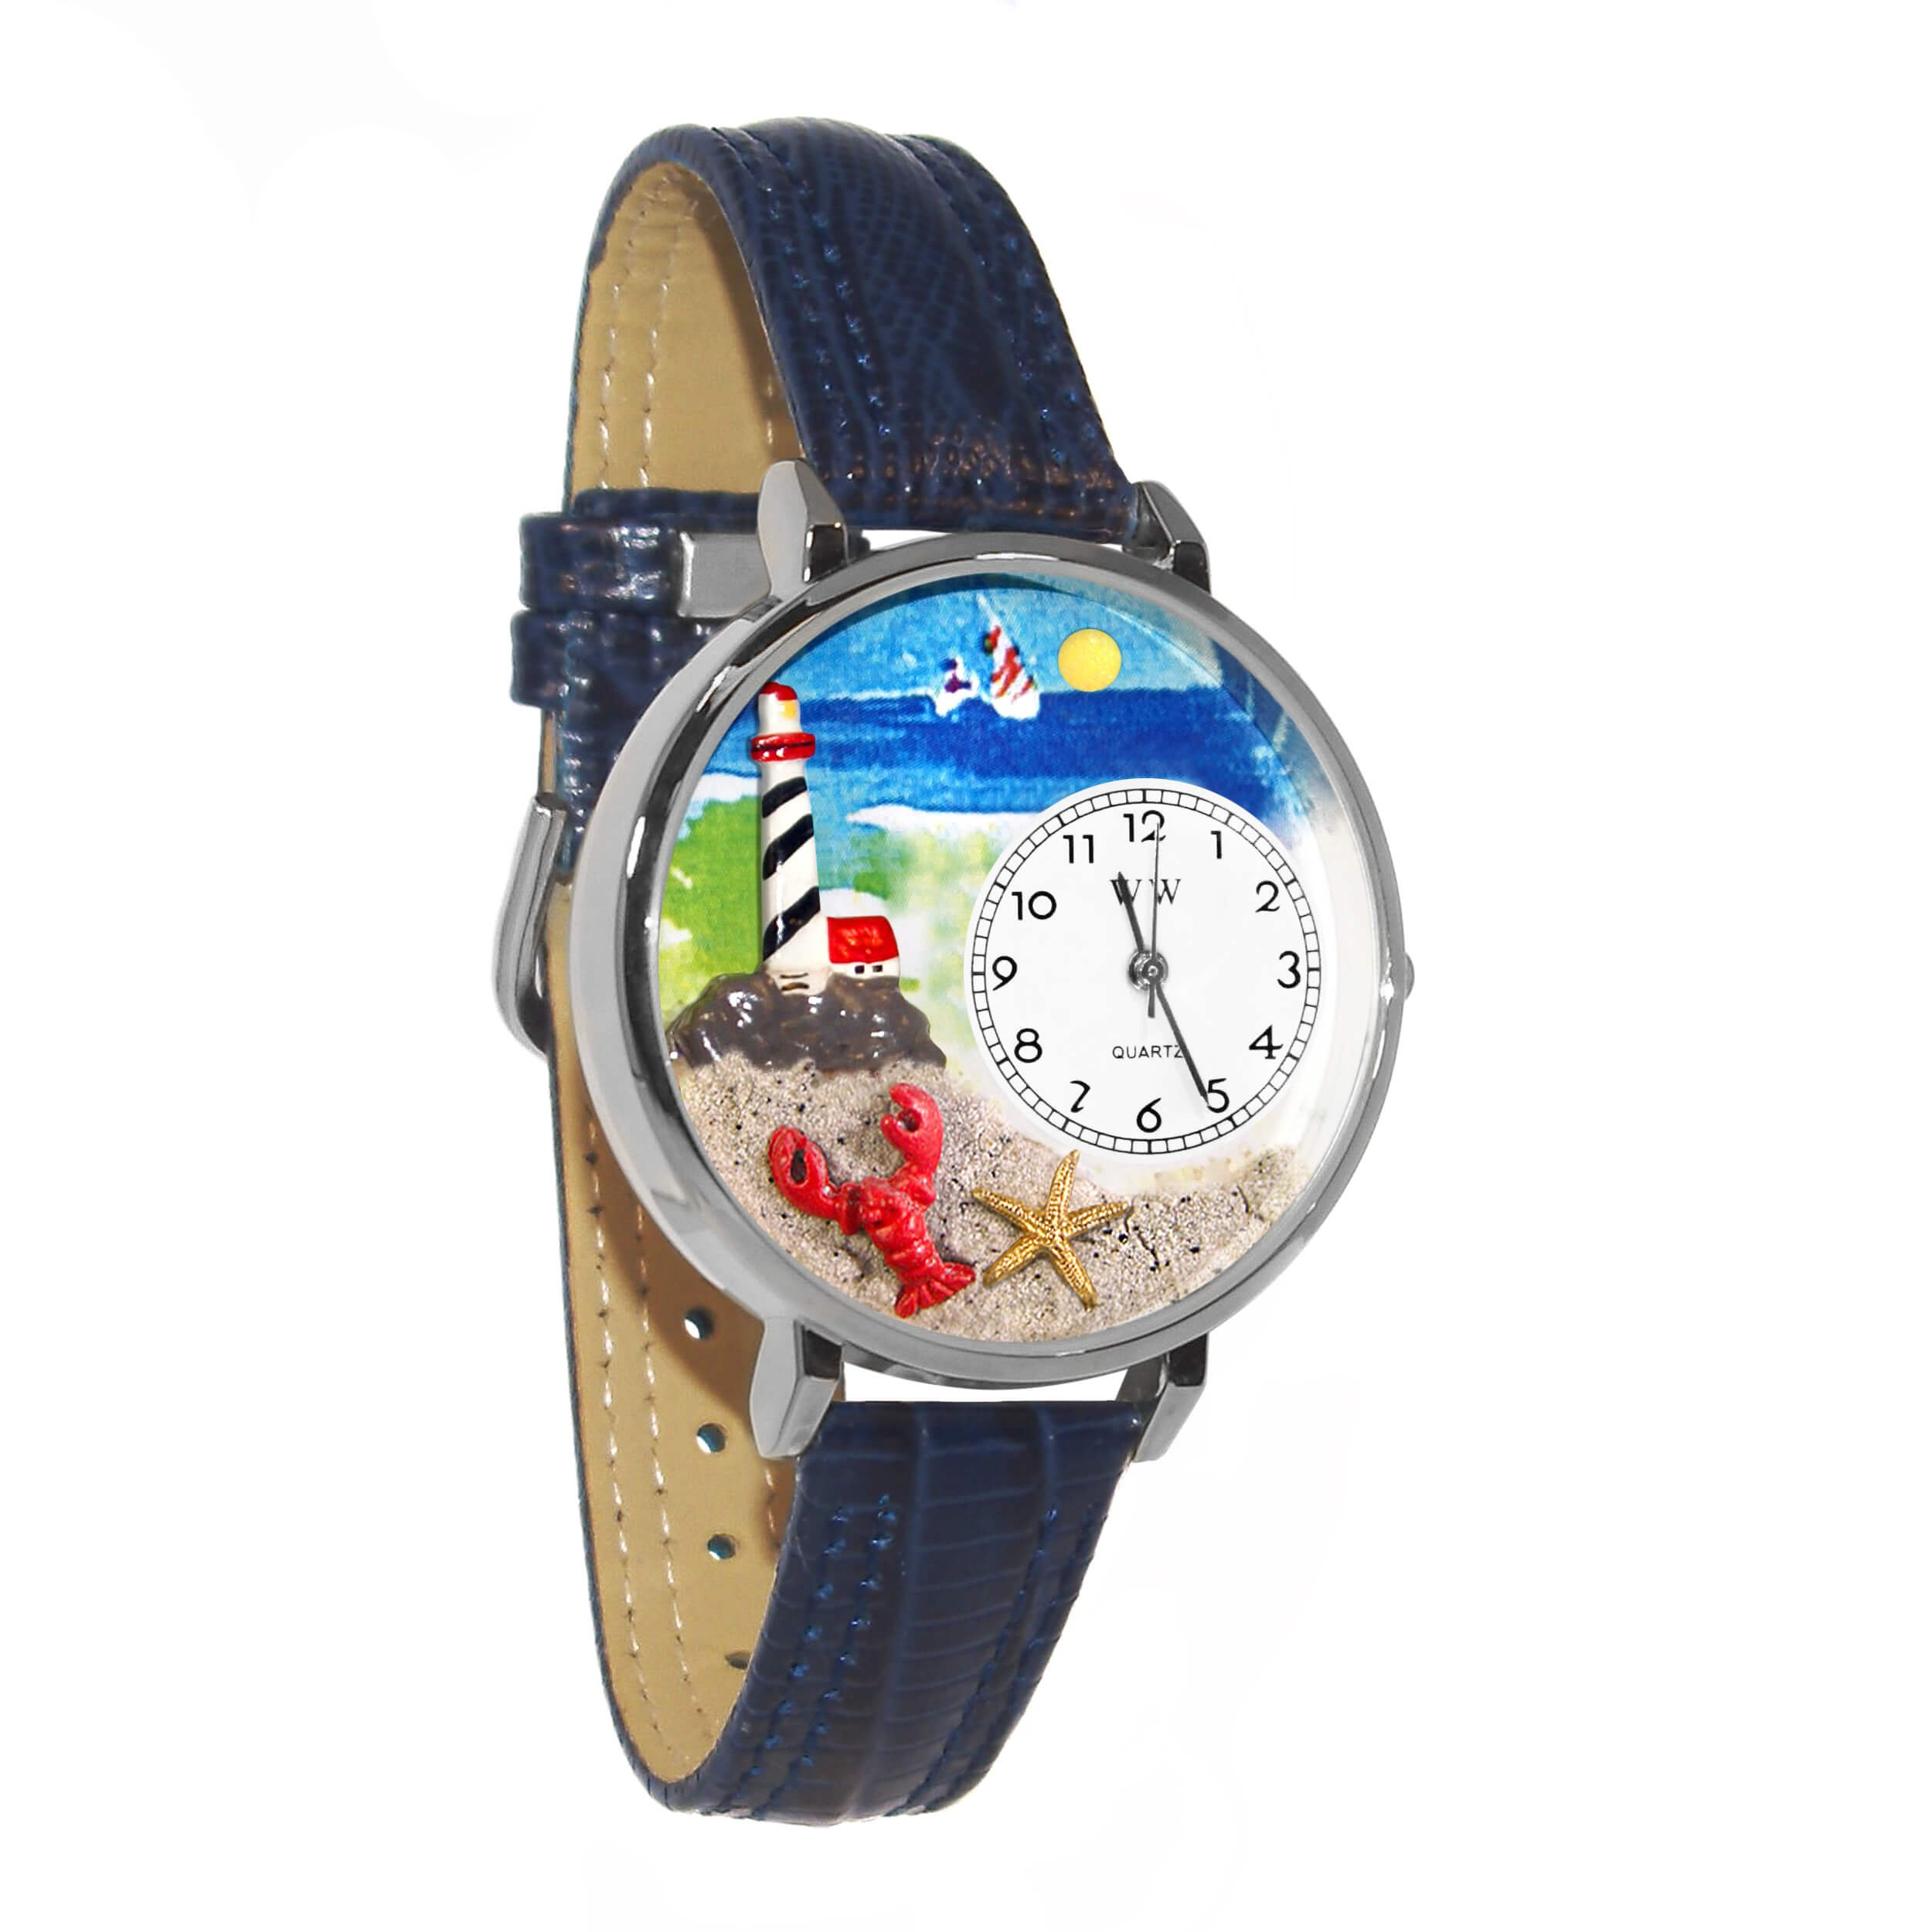 Whimsical Watches Unisex U1210013 Lighthouse Navy Blue Leather Watch